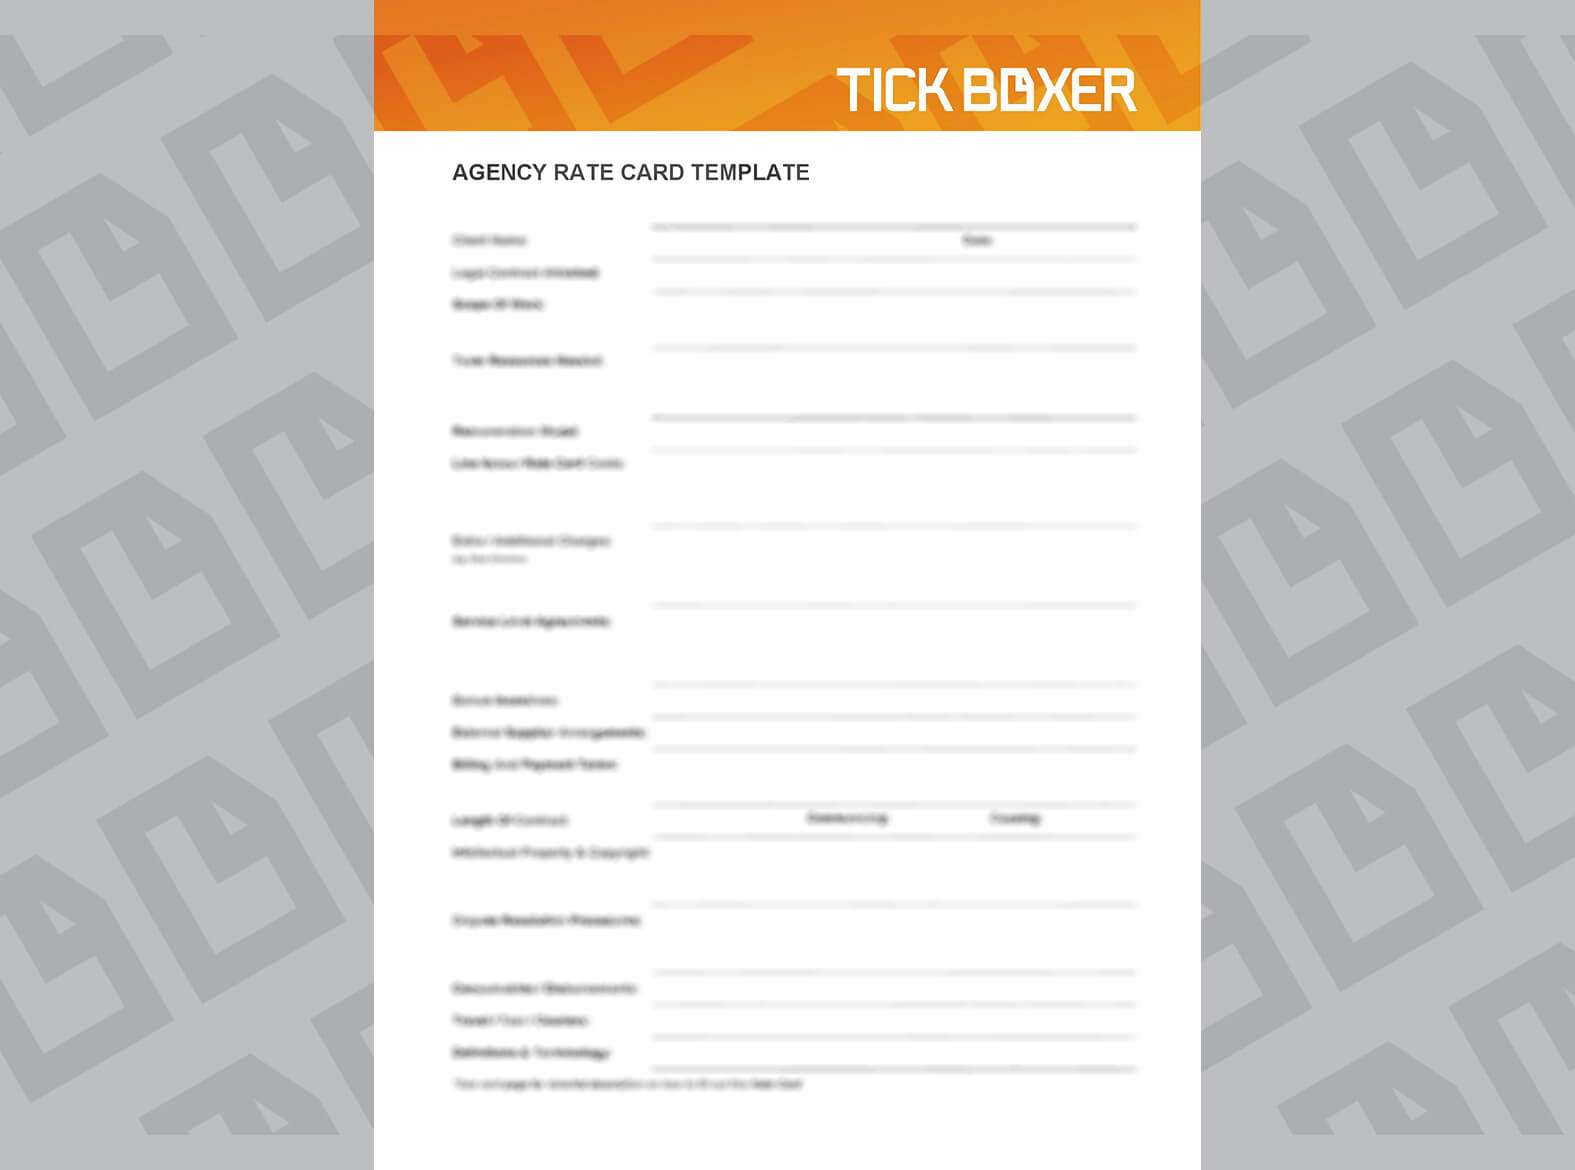 14 Images Of Ad Agency Scorecard Template | Zeept inside Advertising Rate Card Template